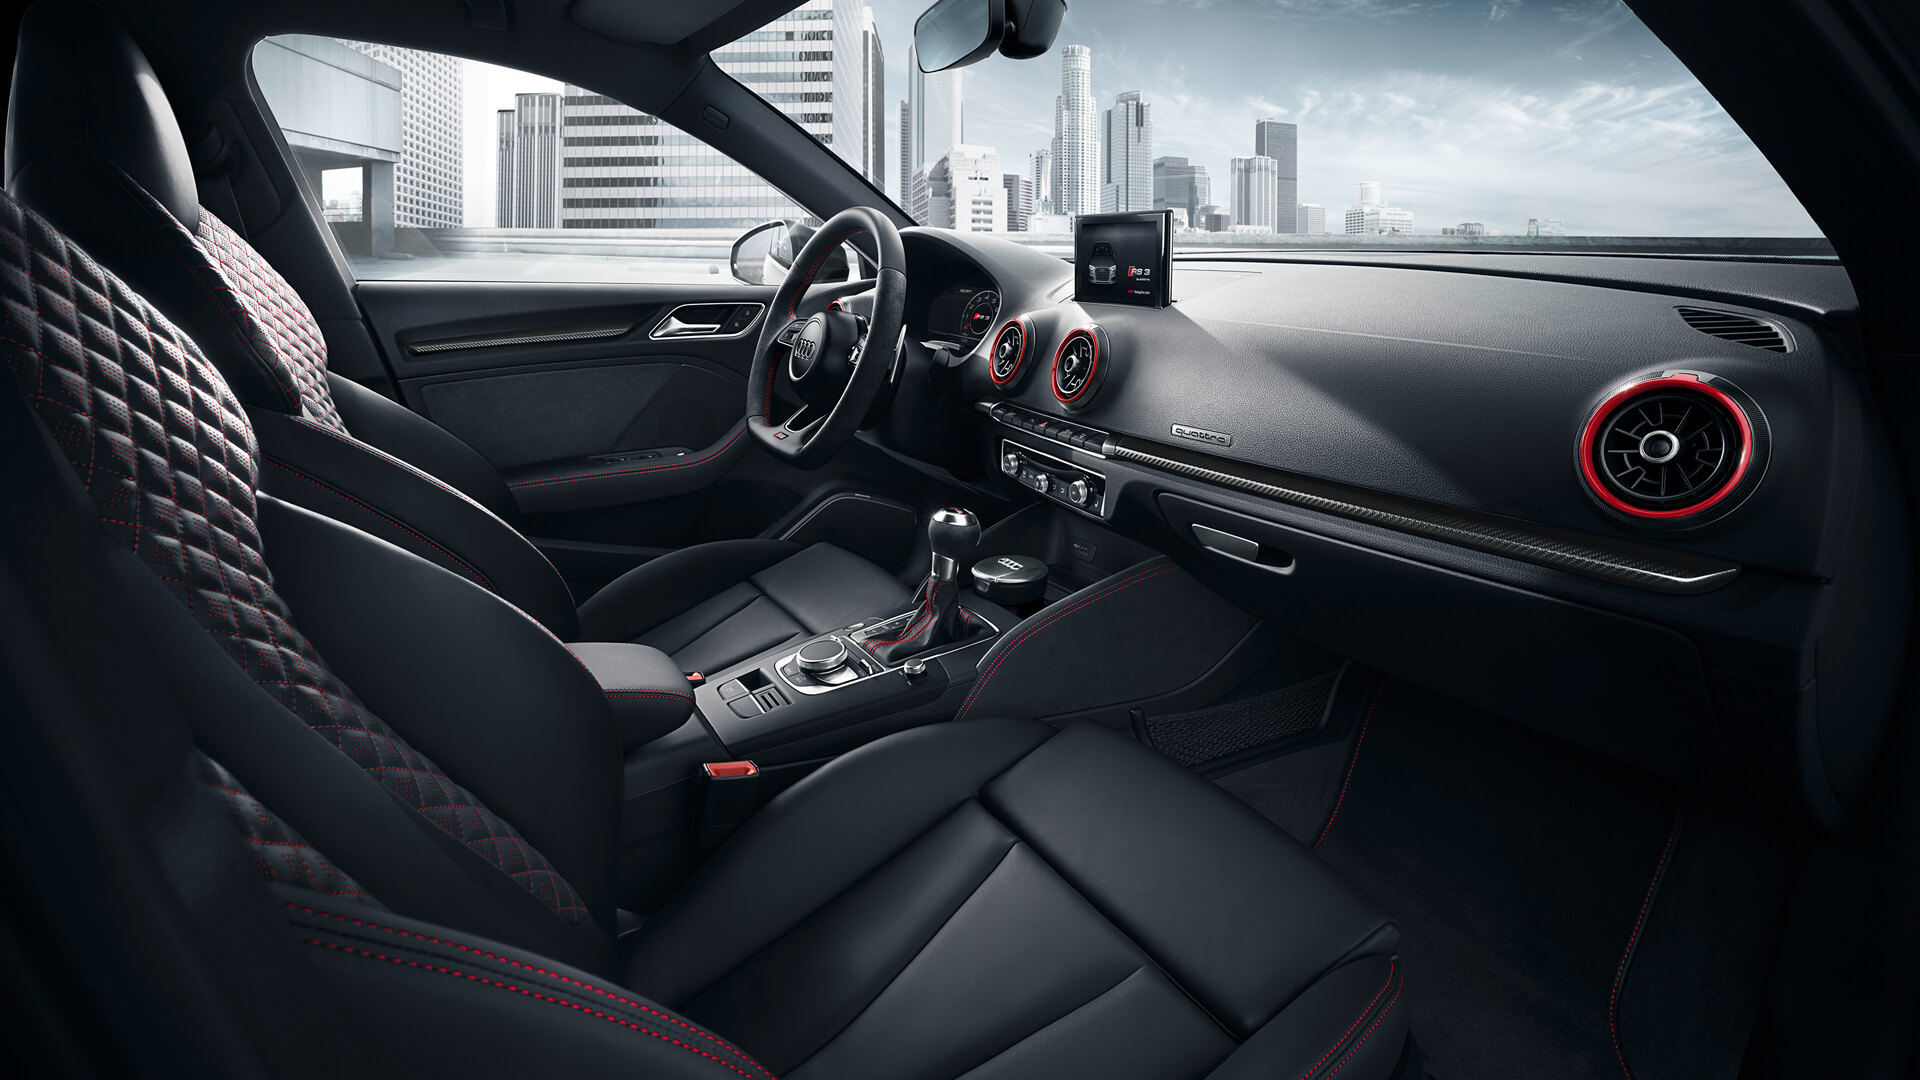 The interior cabin of the Audi RS 3